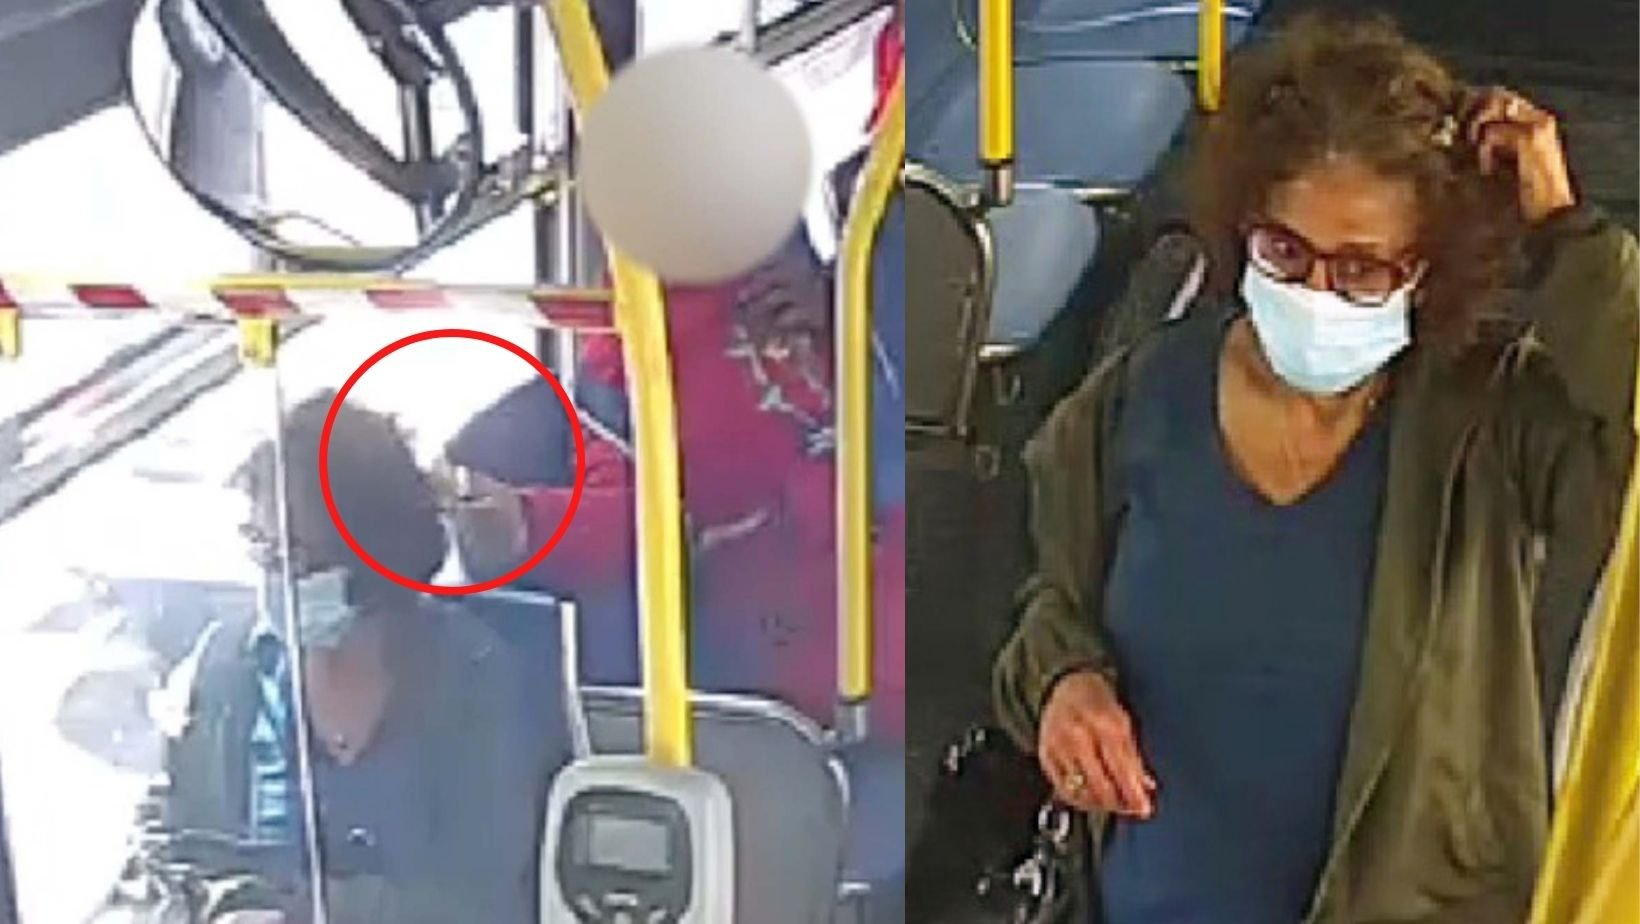 1 46.jpg?resize=1200,630 - Police Are Hunting A Teenager Who Ignited A Woman's Hair, With Some People Lambasting SFPD For Blurring The Suspect's Face